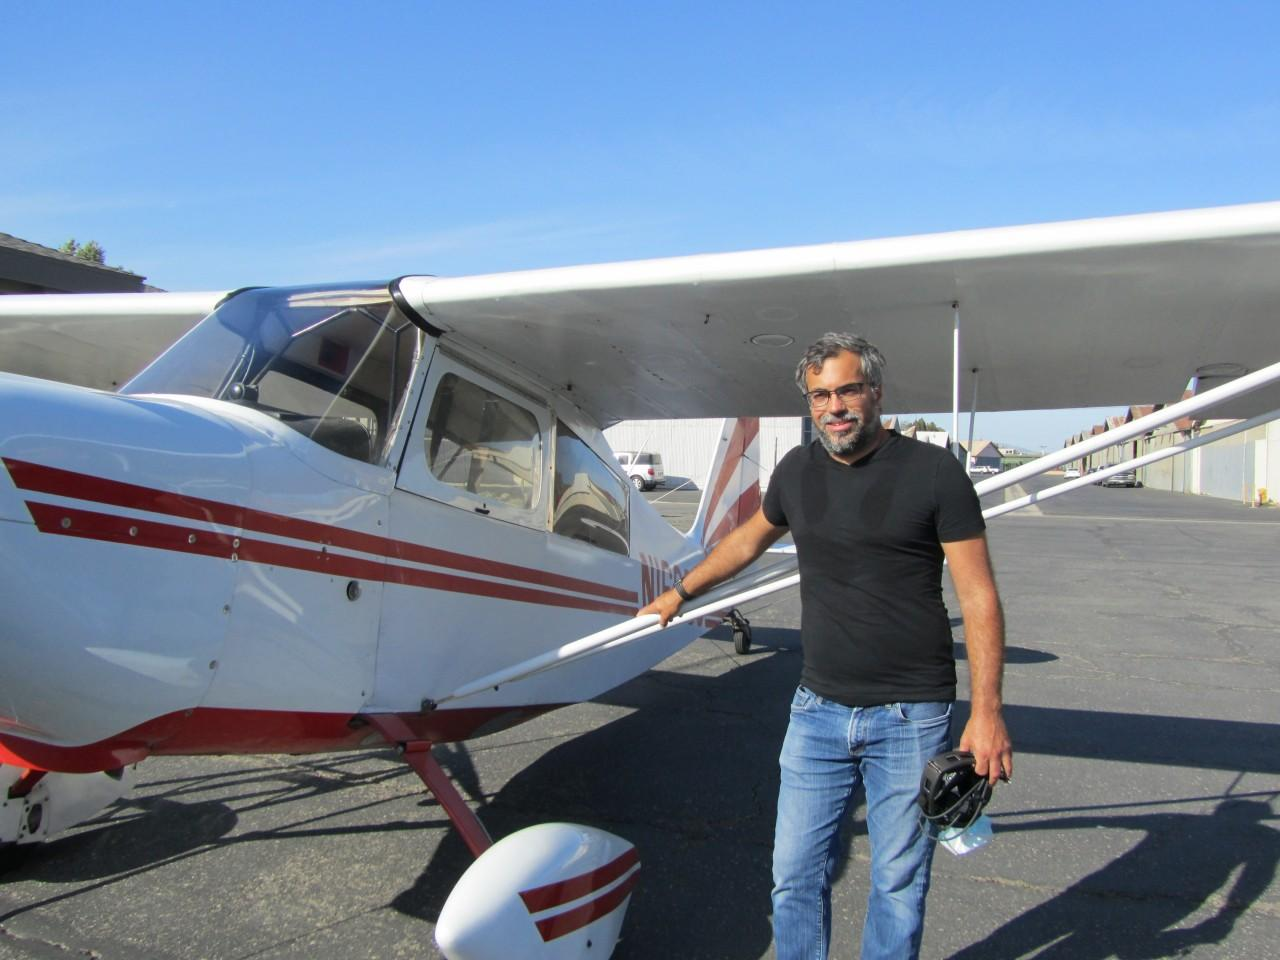 Tailwheel Endorsement - Chris Lazzaro